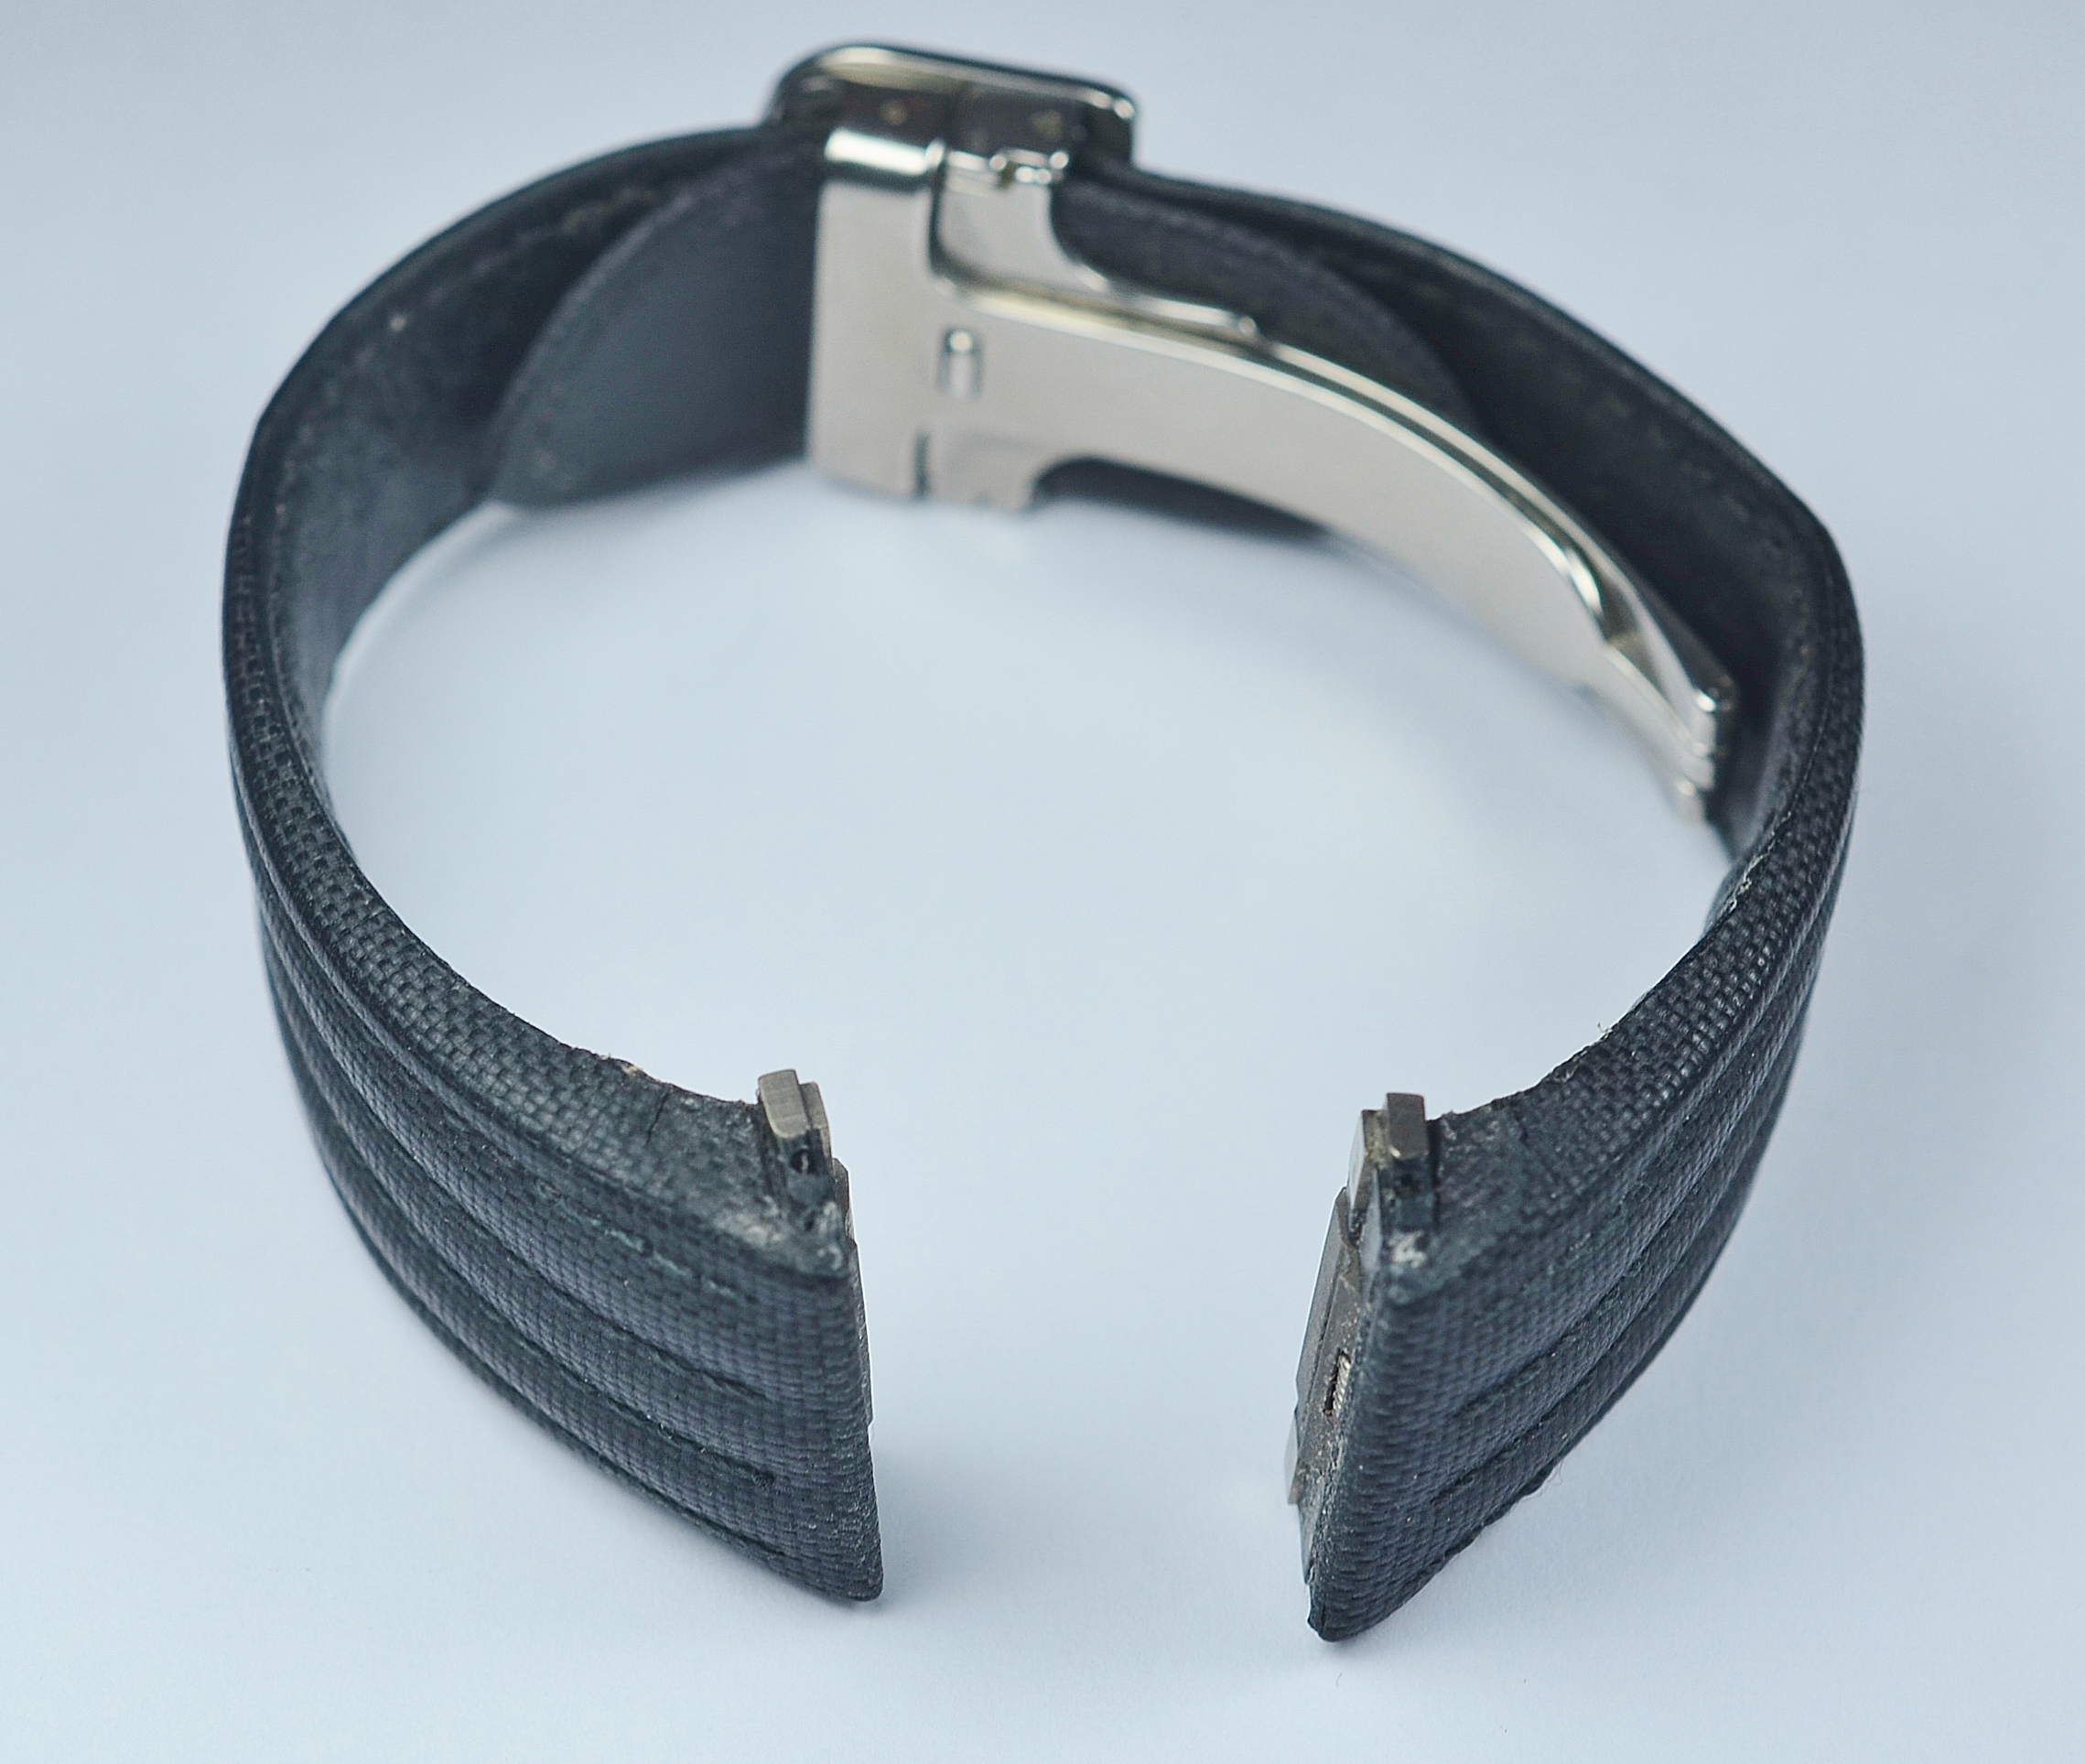 Cartier Roadster 19mm Watch Strap Band Black Canvas